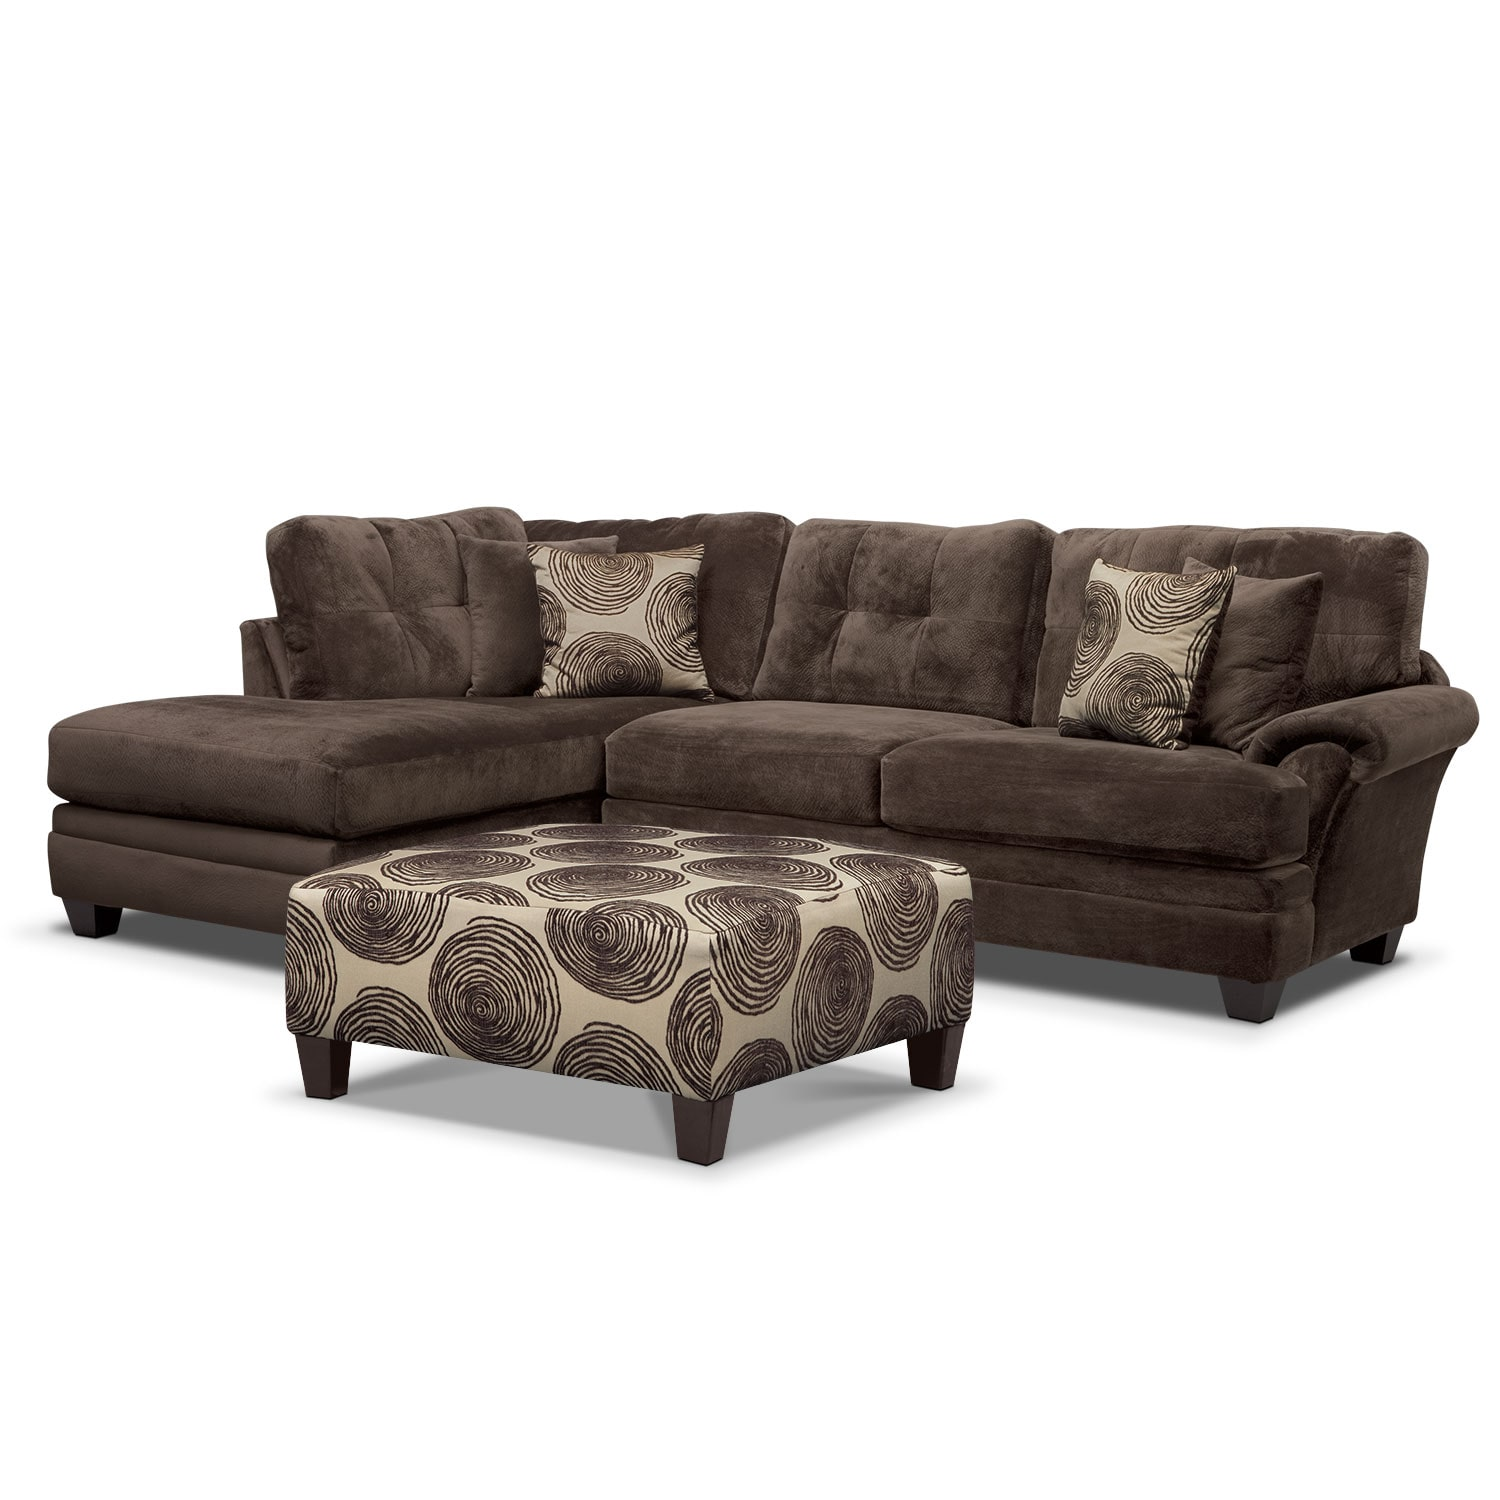 Fantastic Cordelle 2 Piece Sectional With Chaise And Ottoman Gmtry Best Dining Table And Chair Ideas Images Gmtryco